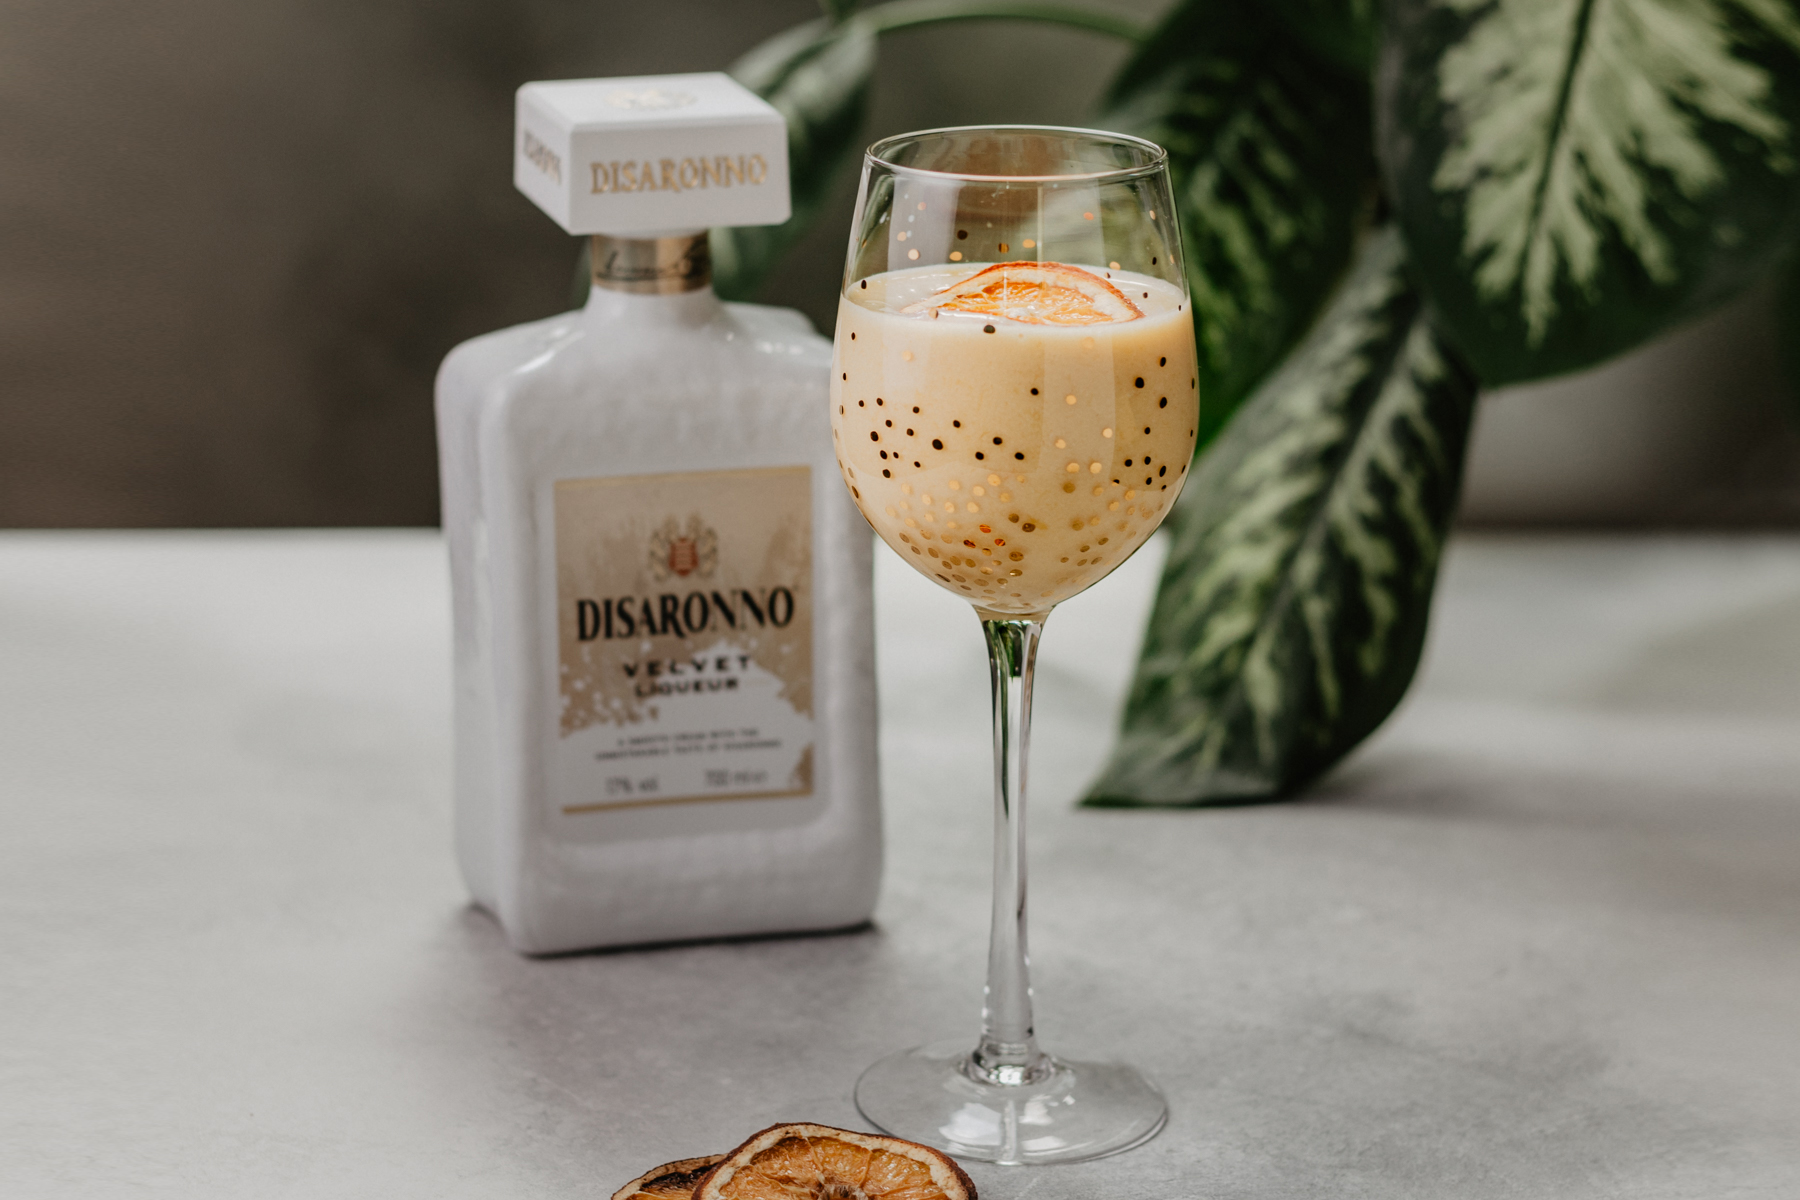 Disaronno Velvelt cocktail